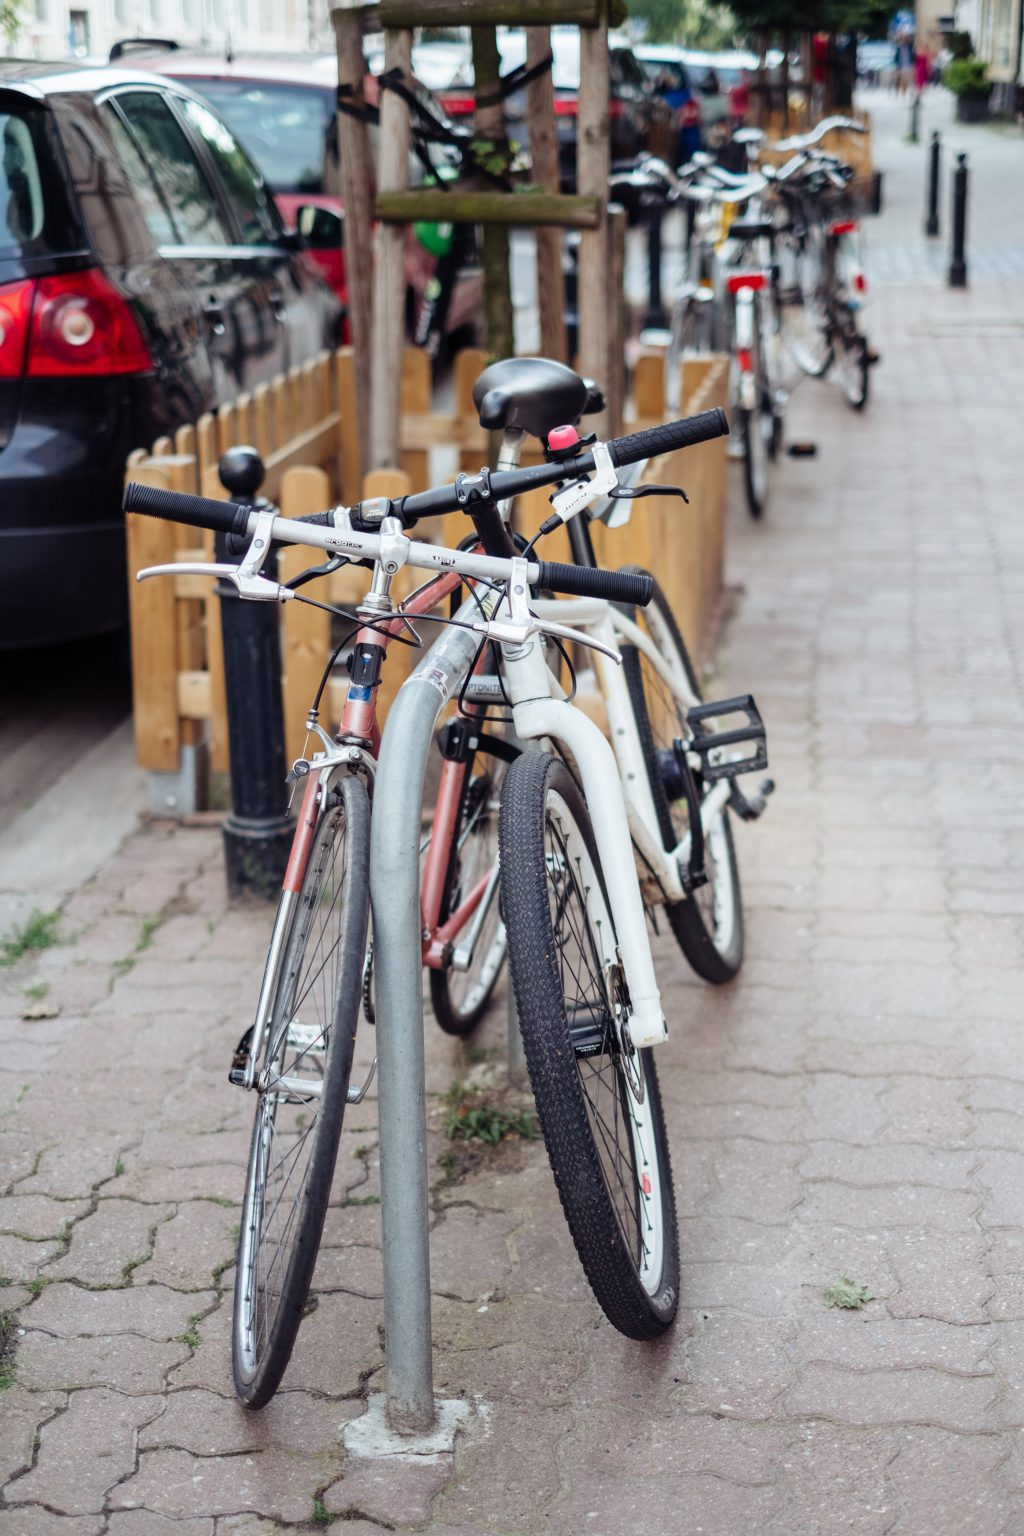 Bicycles attached to bike racks 2 - free stock photo